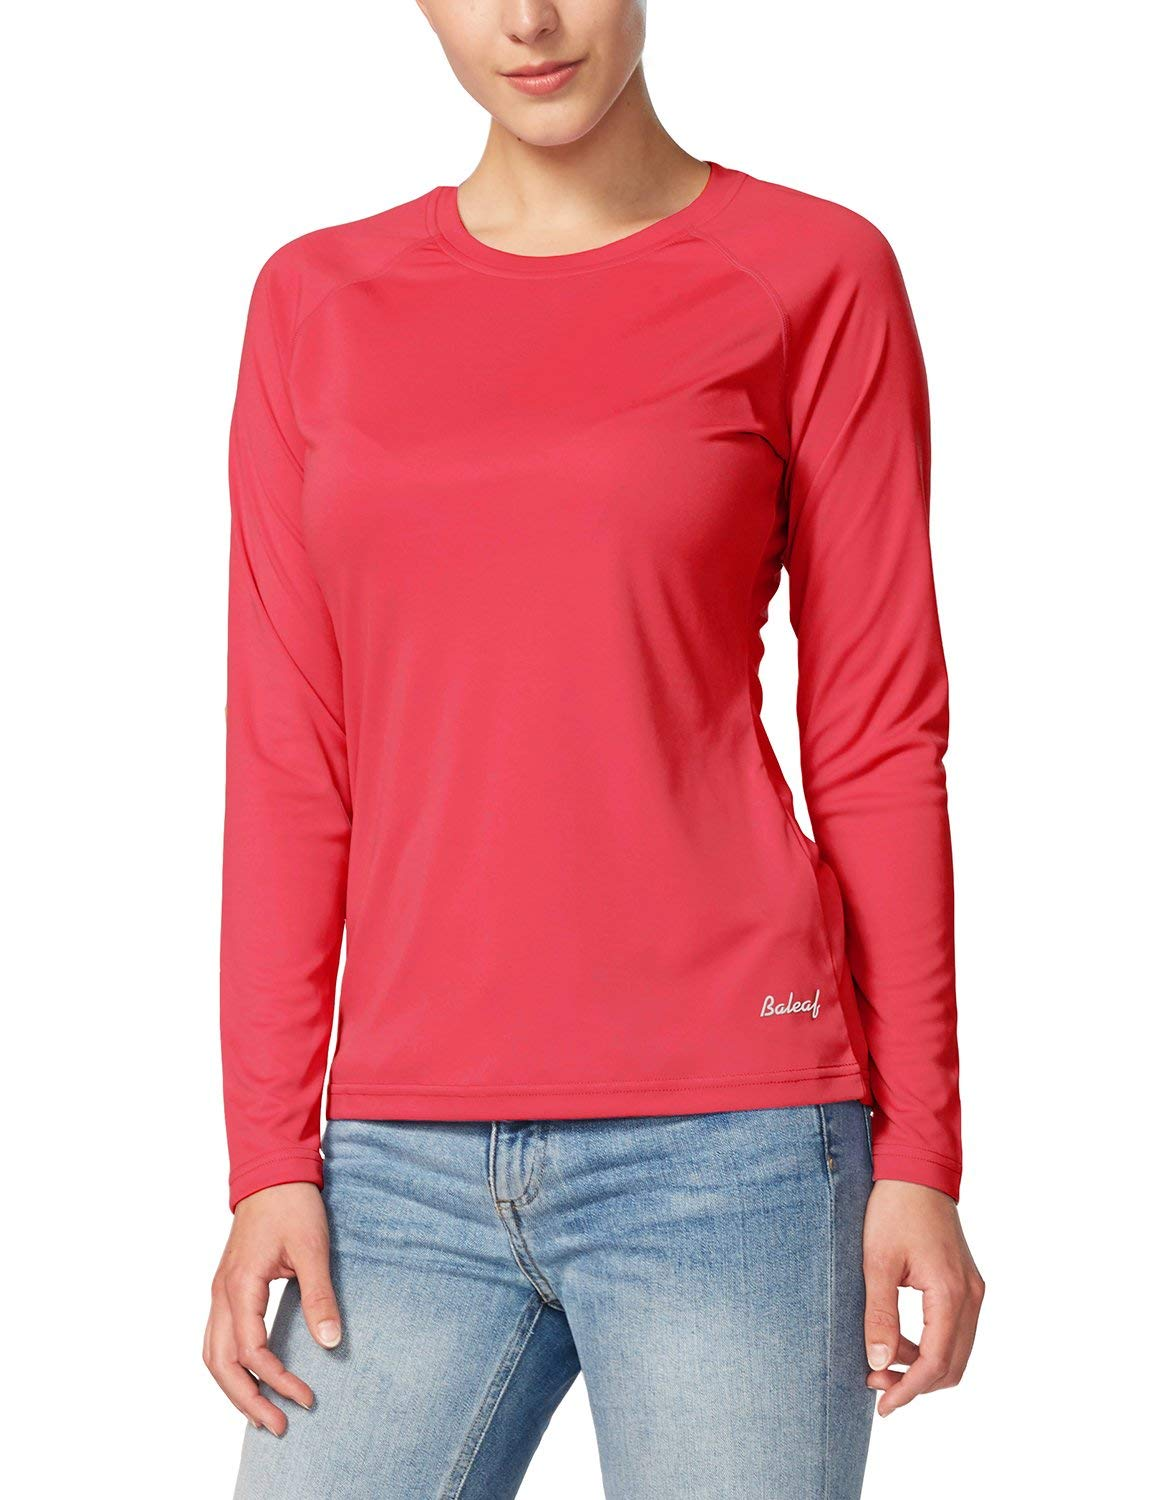 BALEAF Women's UPF 50+ Sun Protection T-Shirt Long Sleeve Outdoor Performance Rouge Red Size XXL by BALEAF